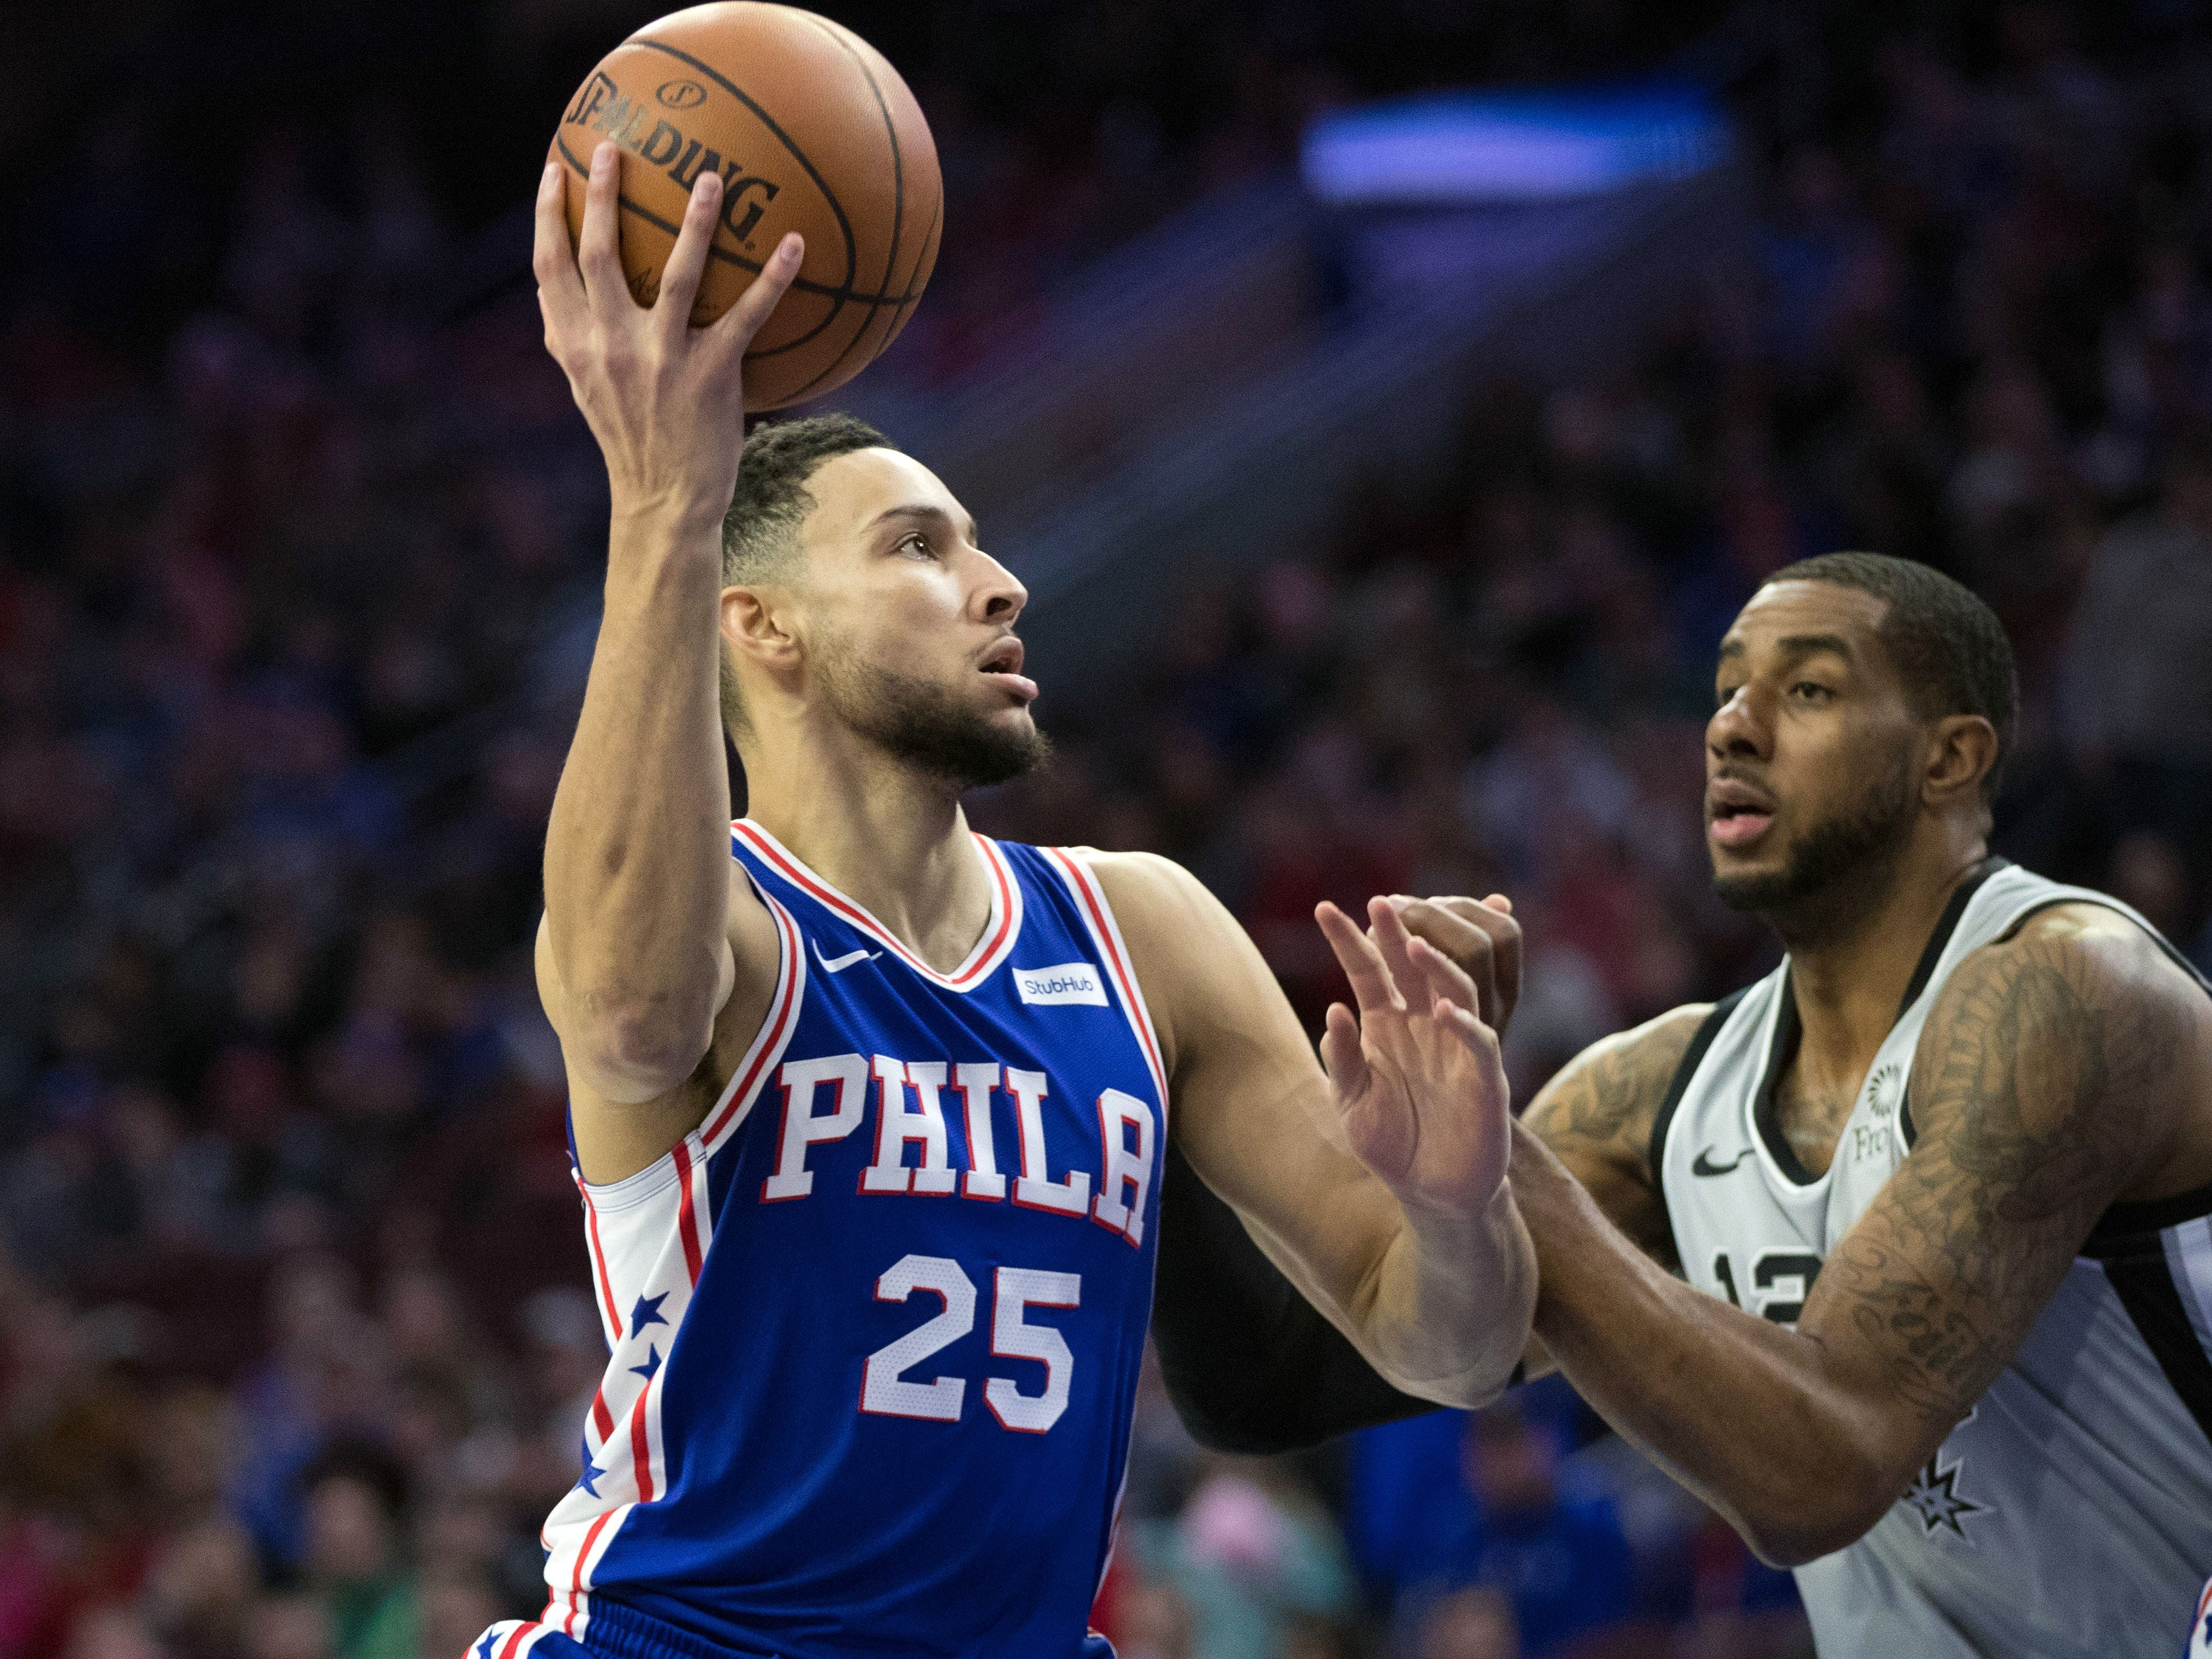 59. Ben Simmons, 76ers (Jan. 23): 21 points, 15 assists, 10 rebounds in 122-120 win over Spurs (eighth of season).